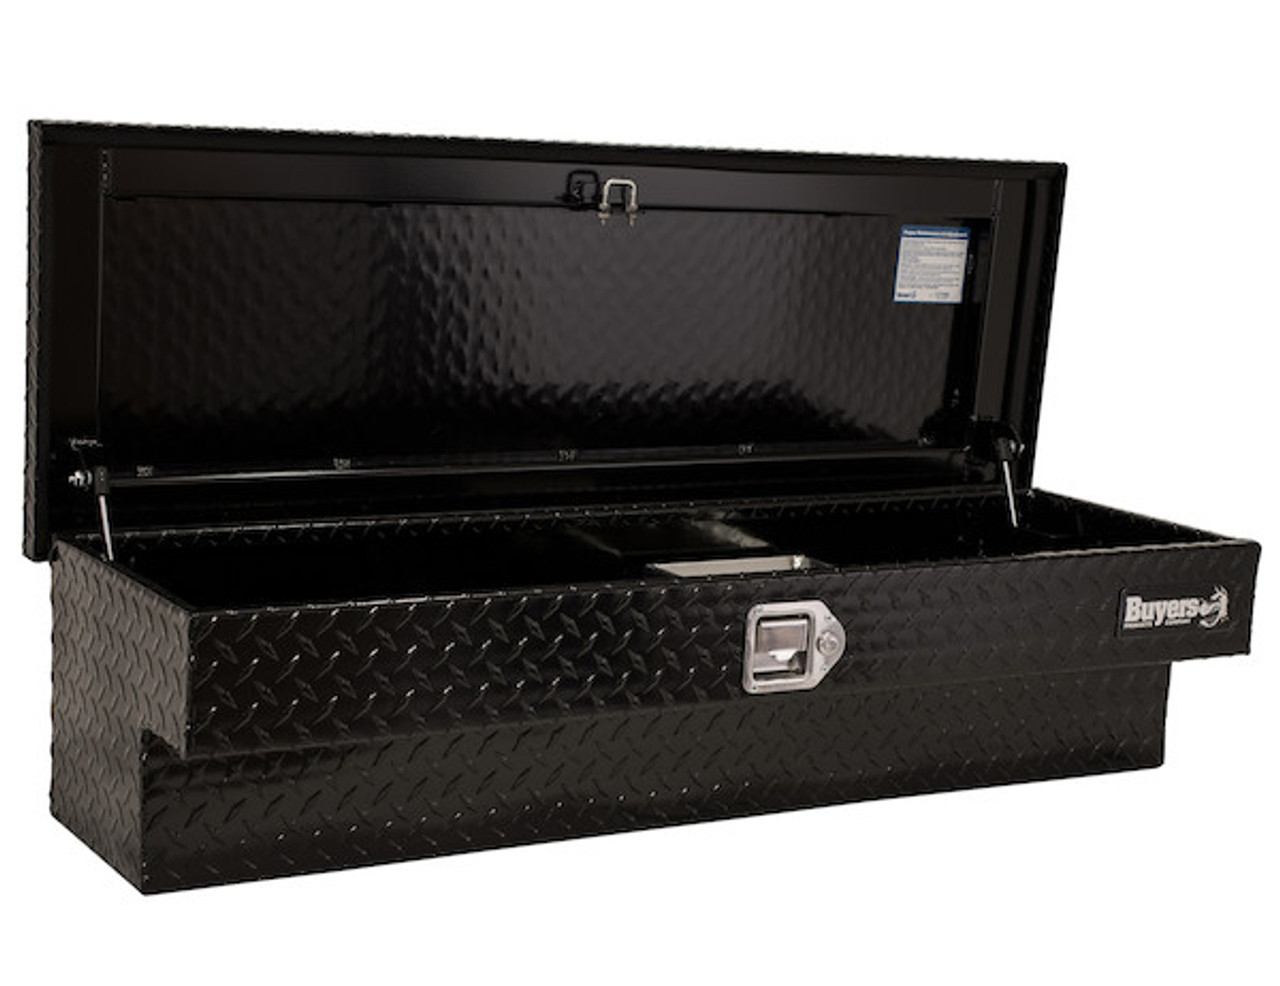 "1721020 BUYERS PRODUCTS BLACK DIAMOND TREAD ALUMINUM LO-SIDER TRUCK TOOLBOX 13""Hx16""Dx56""W"